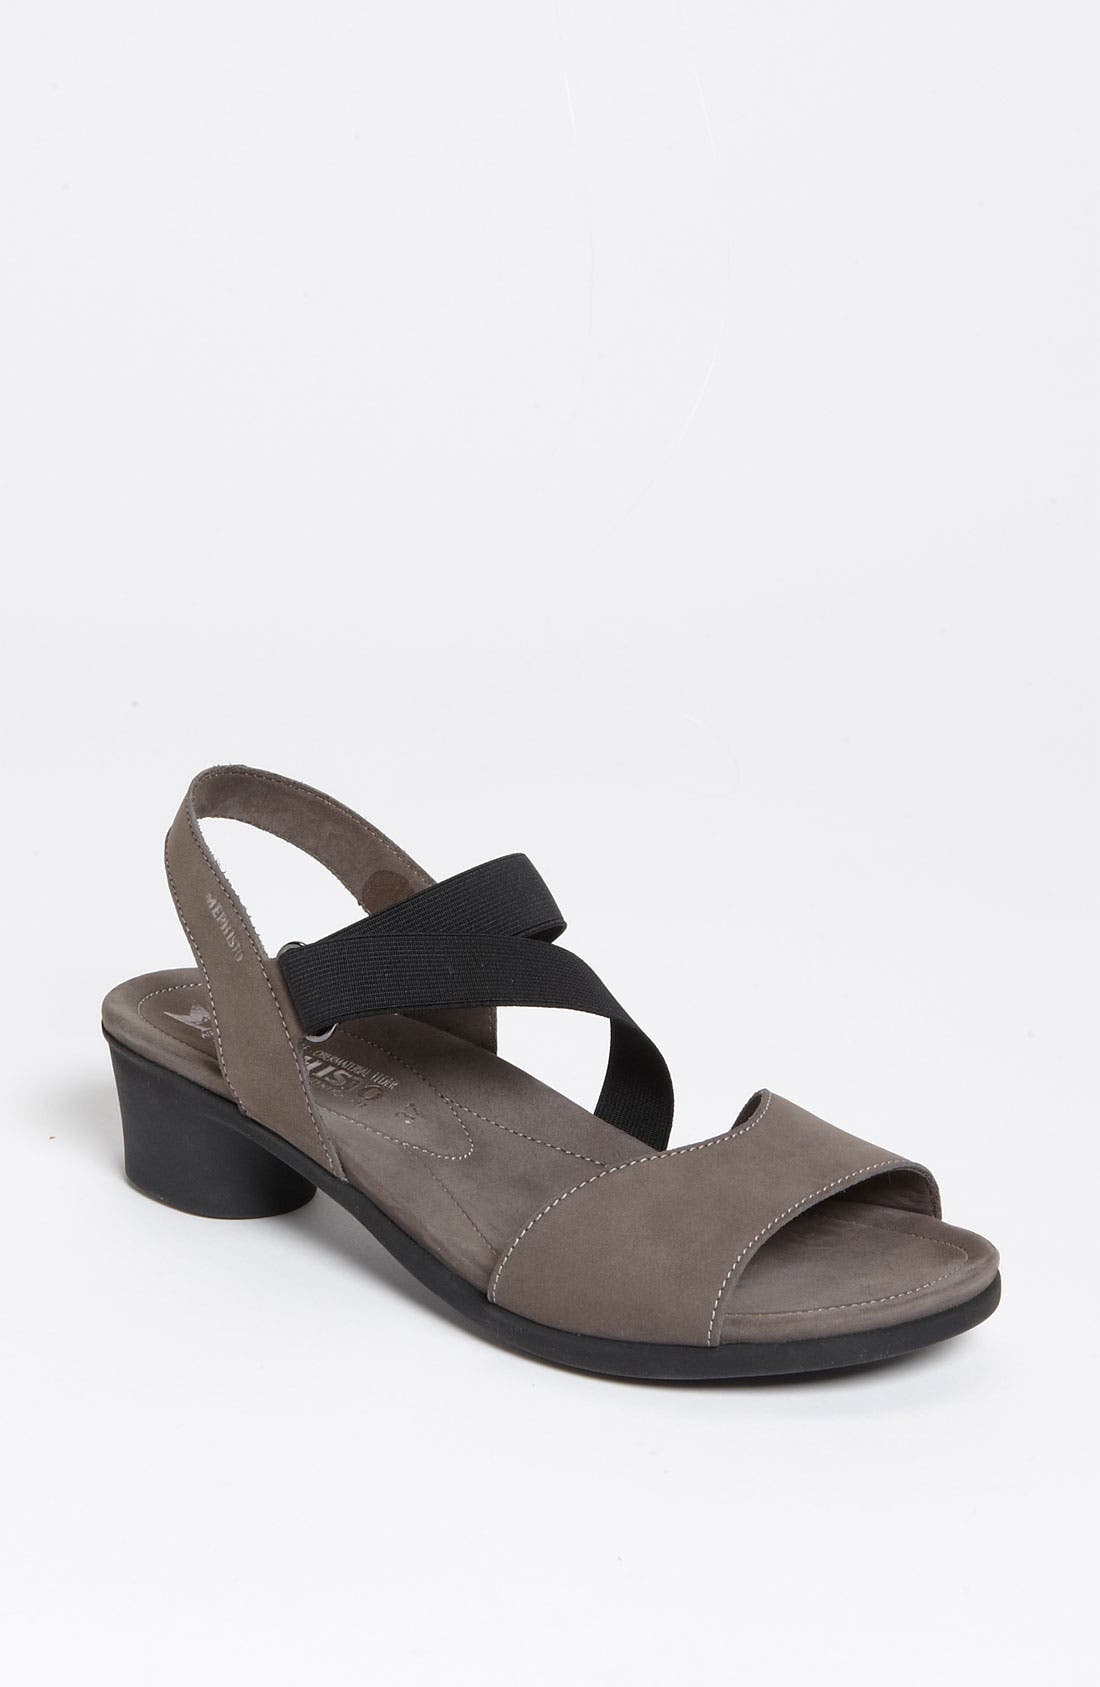 Alternate Image 1 Selected - Mephisto 'Priska' Sandal